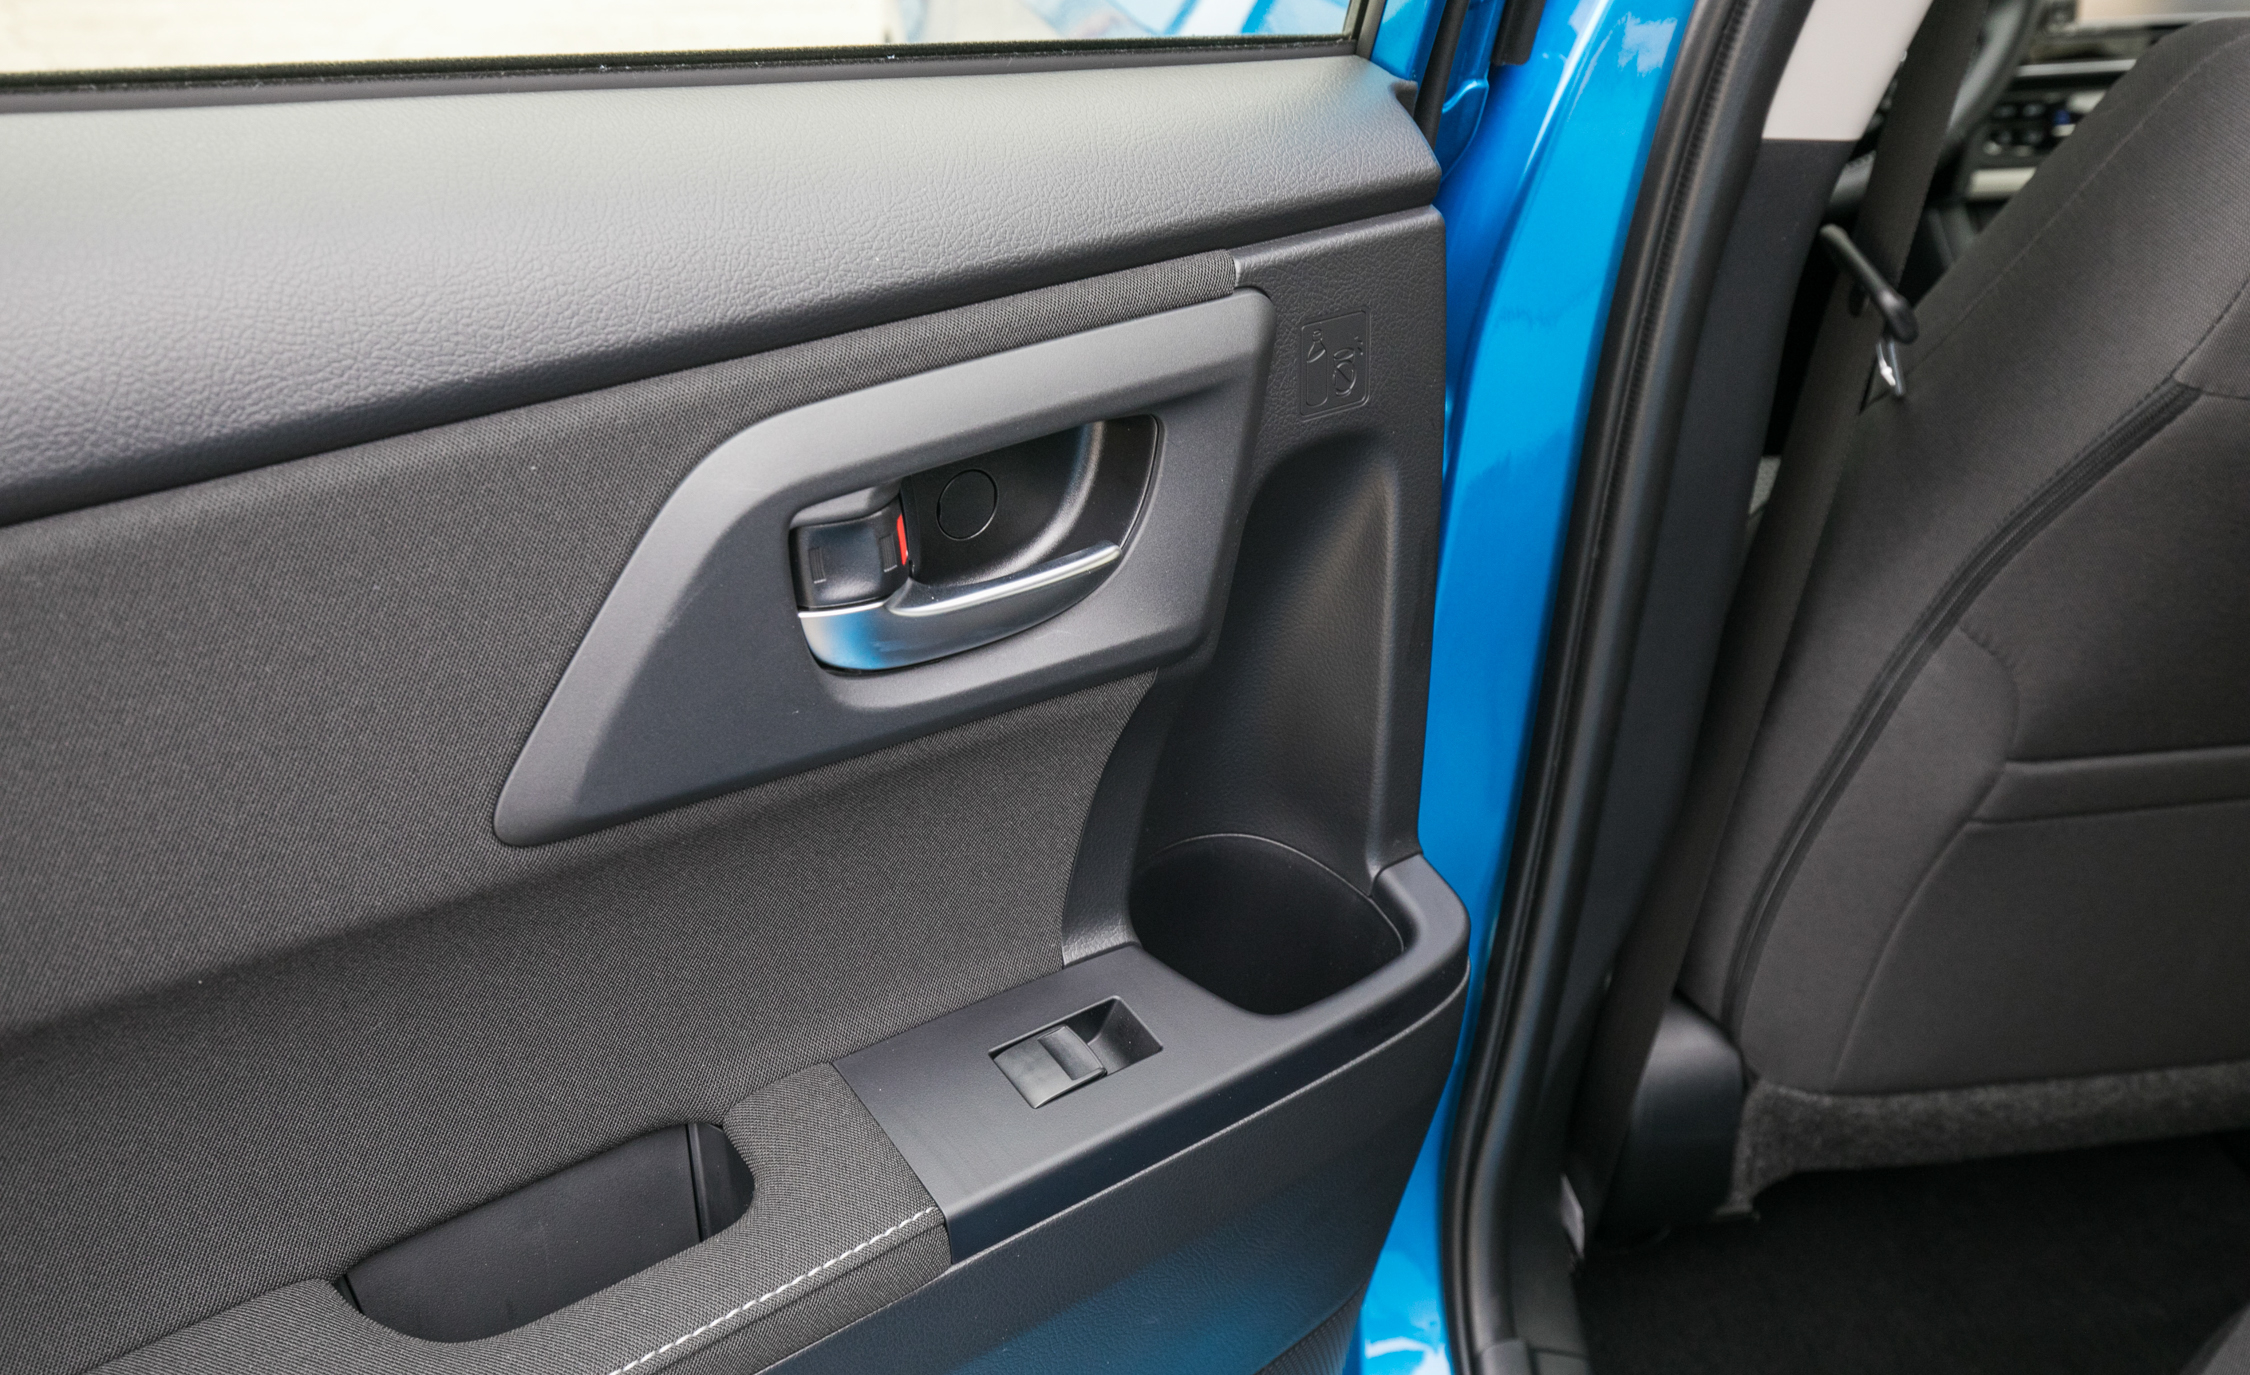 2017 Toyota Corolla IM Hatchback Interior View Door Trim (Photo 52 of 52)